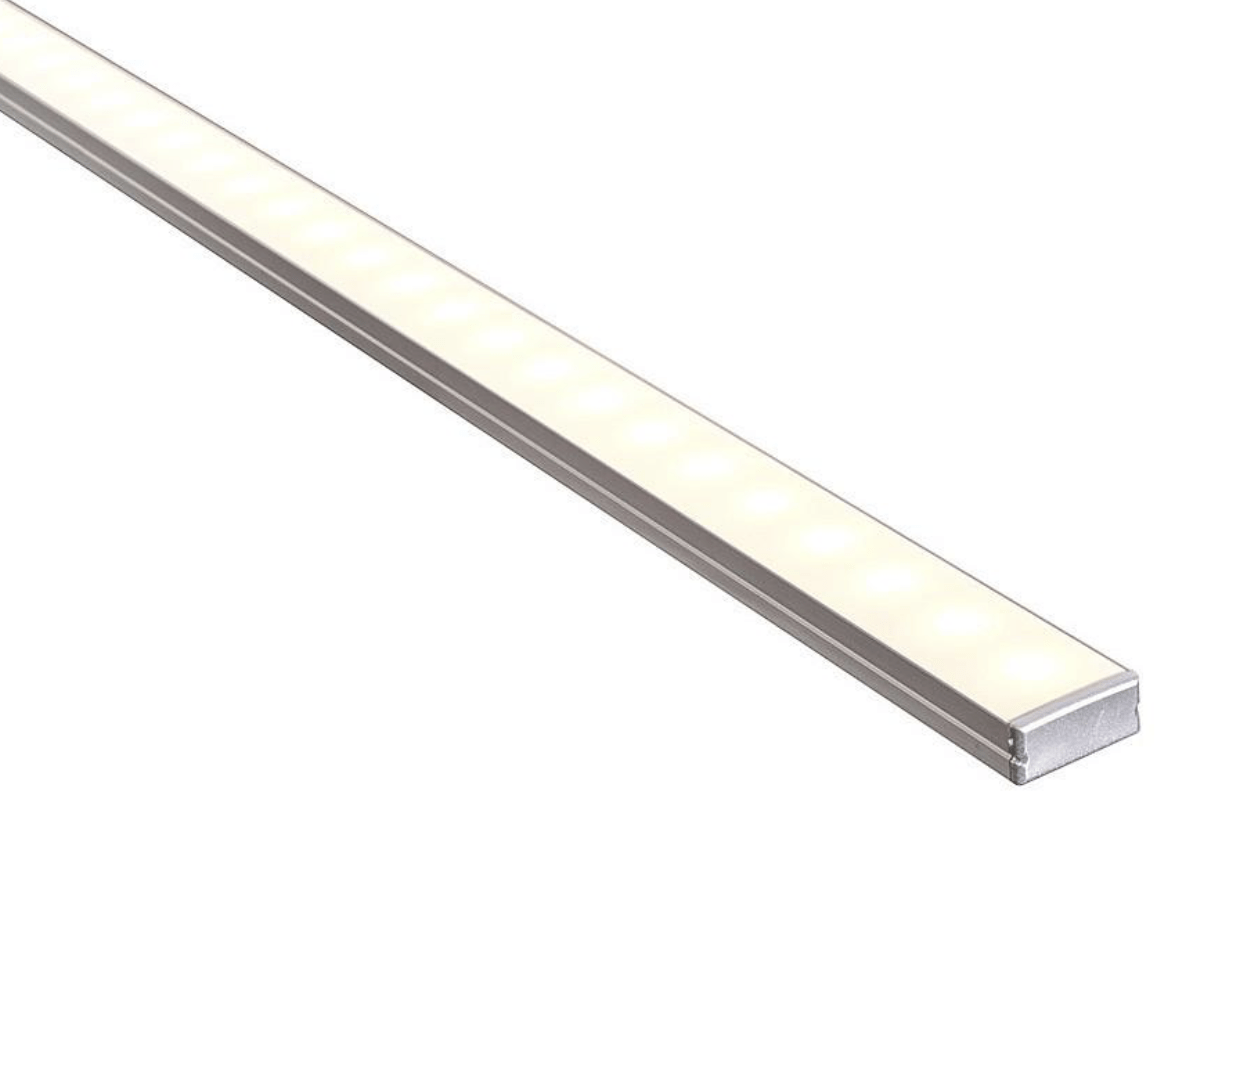 Profiles Surface Mounted Profile - Shallow Double Square - HV9693-2310 lighting shops lighting stores LED lights  lighting designer